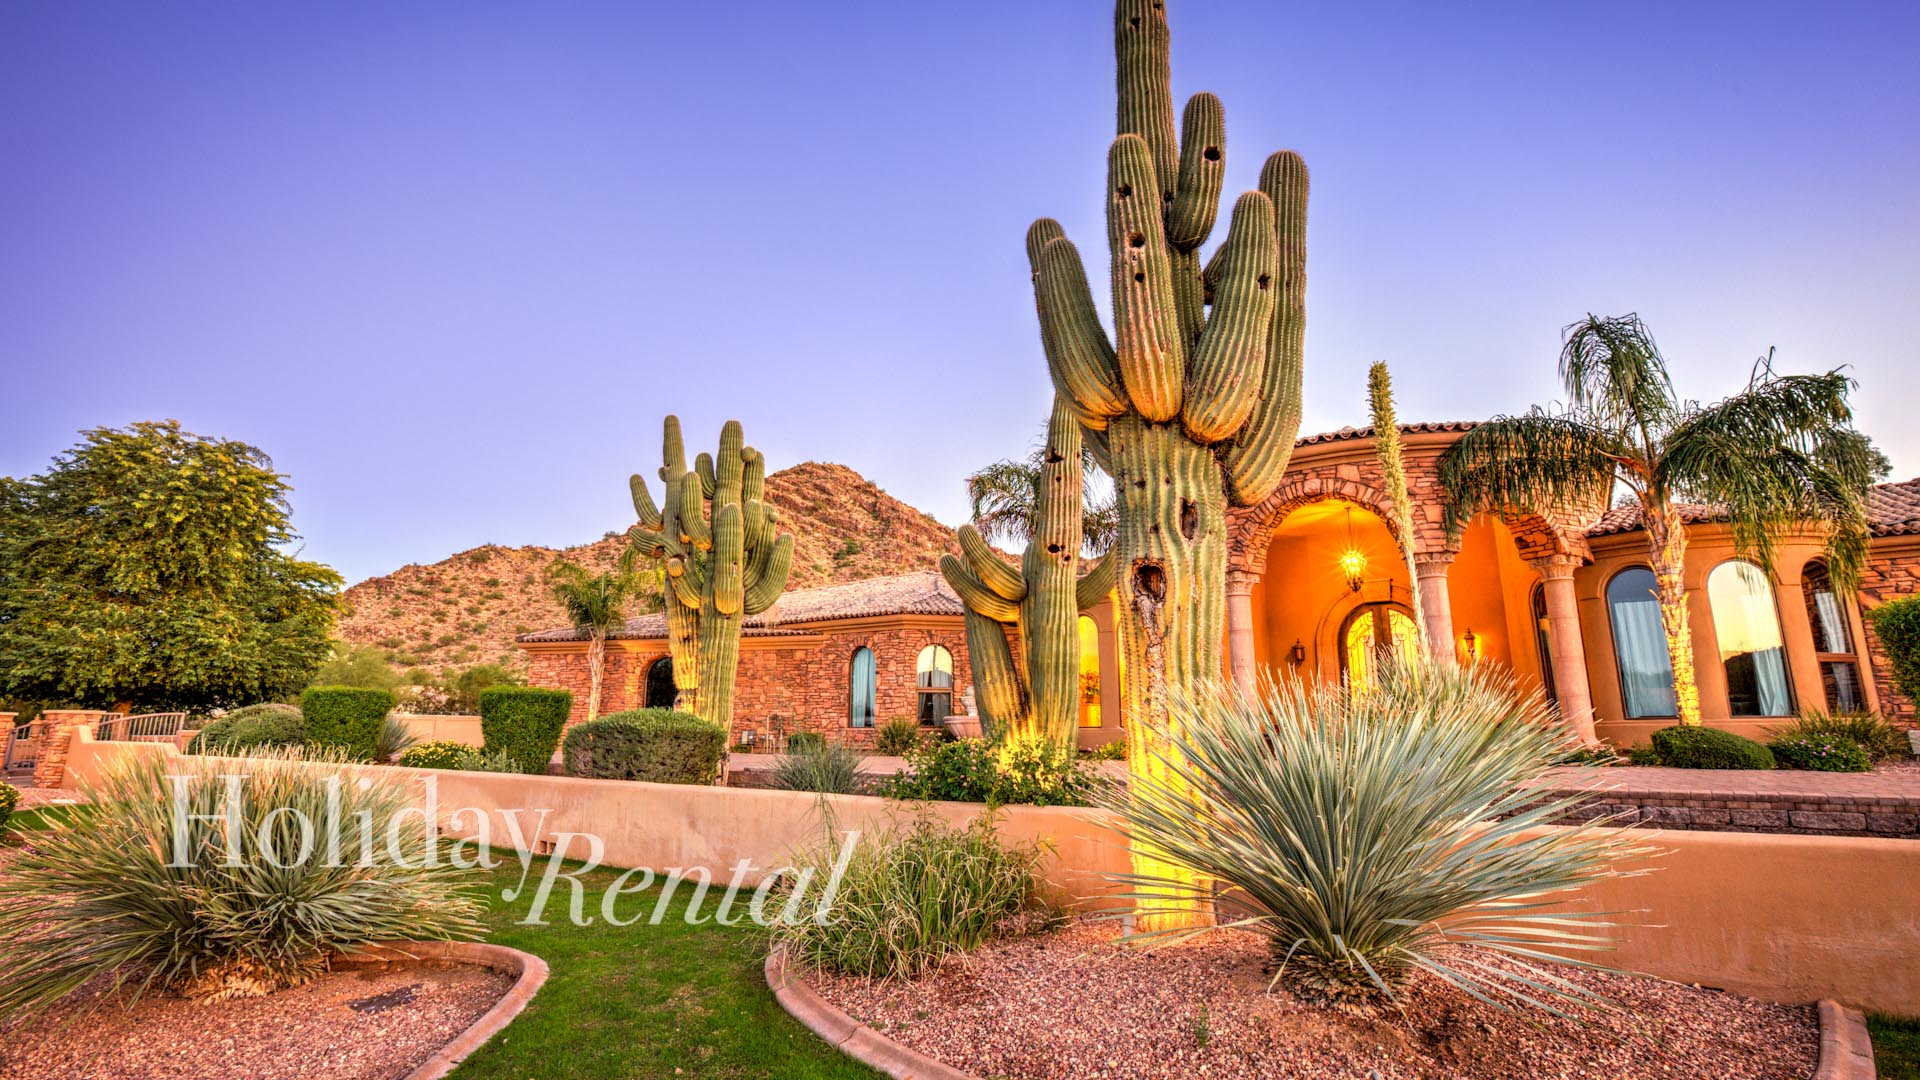 Best Scottsdale Vacation Rental, 8 bedrooms Mountain Views, maid service daily!